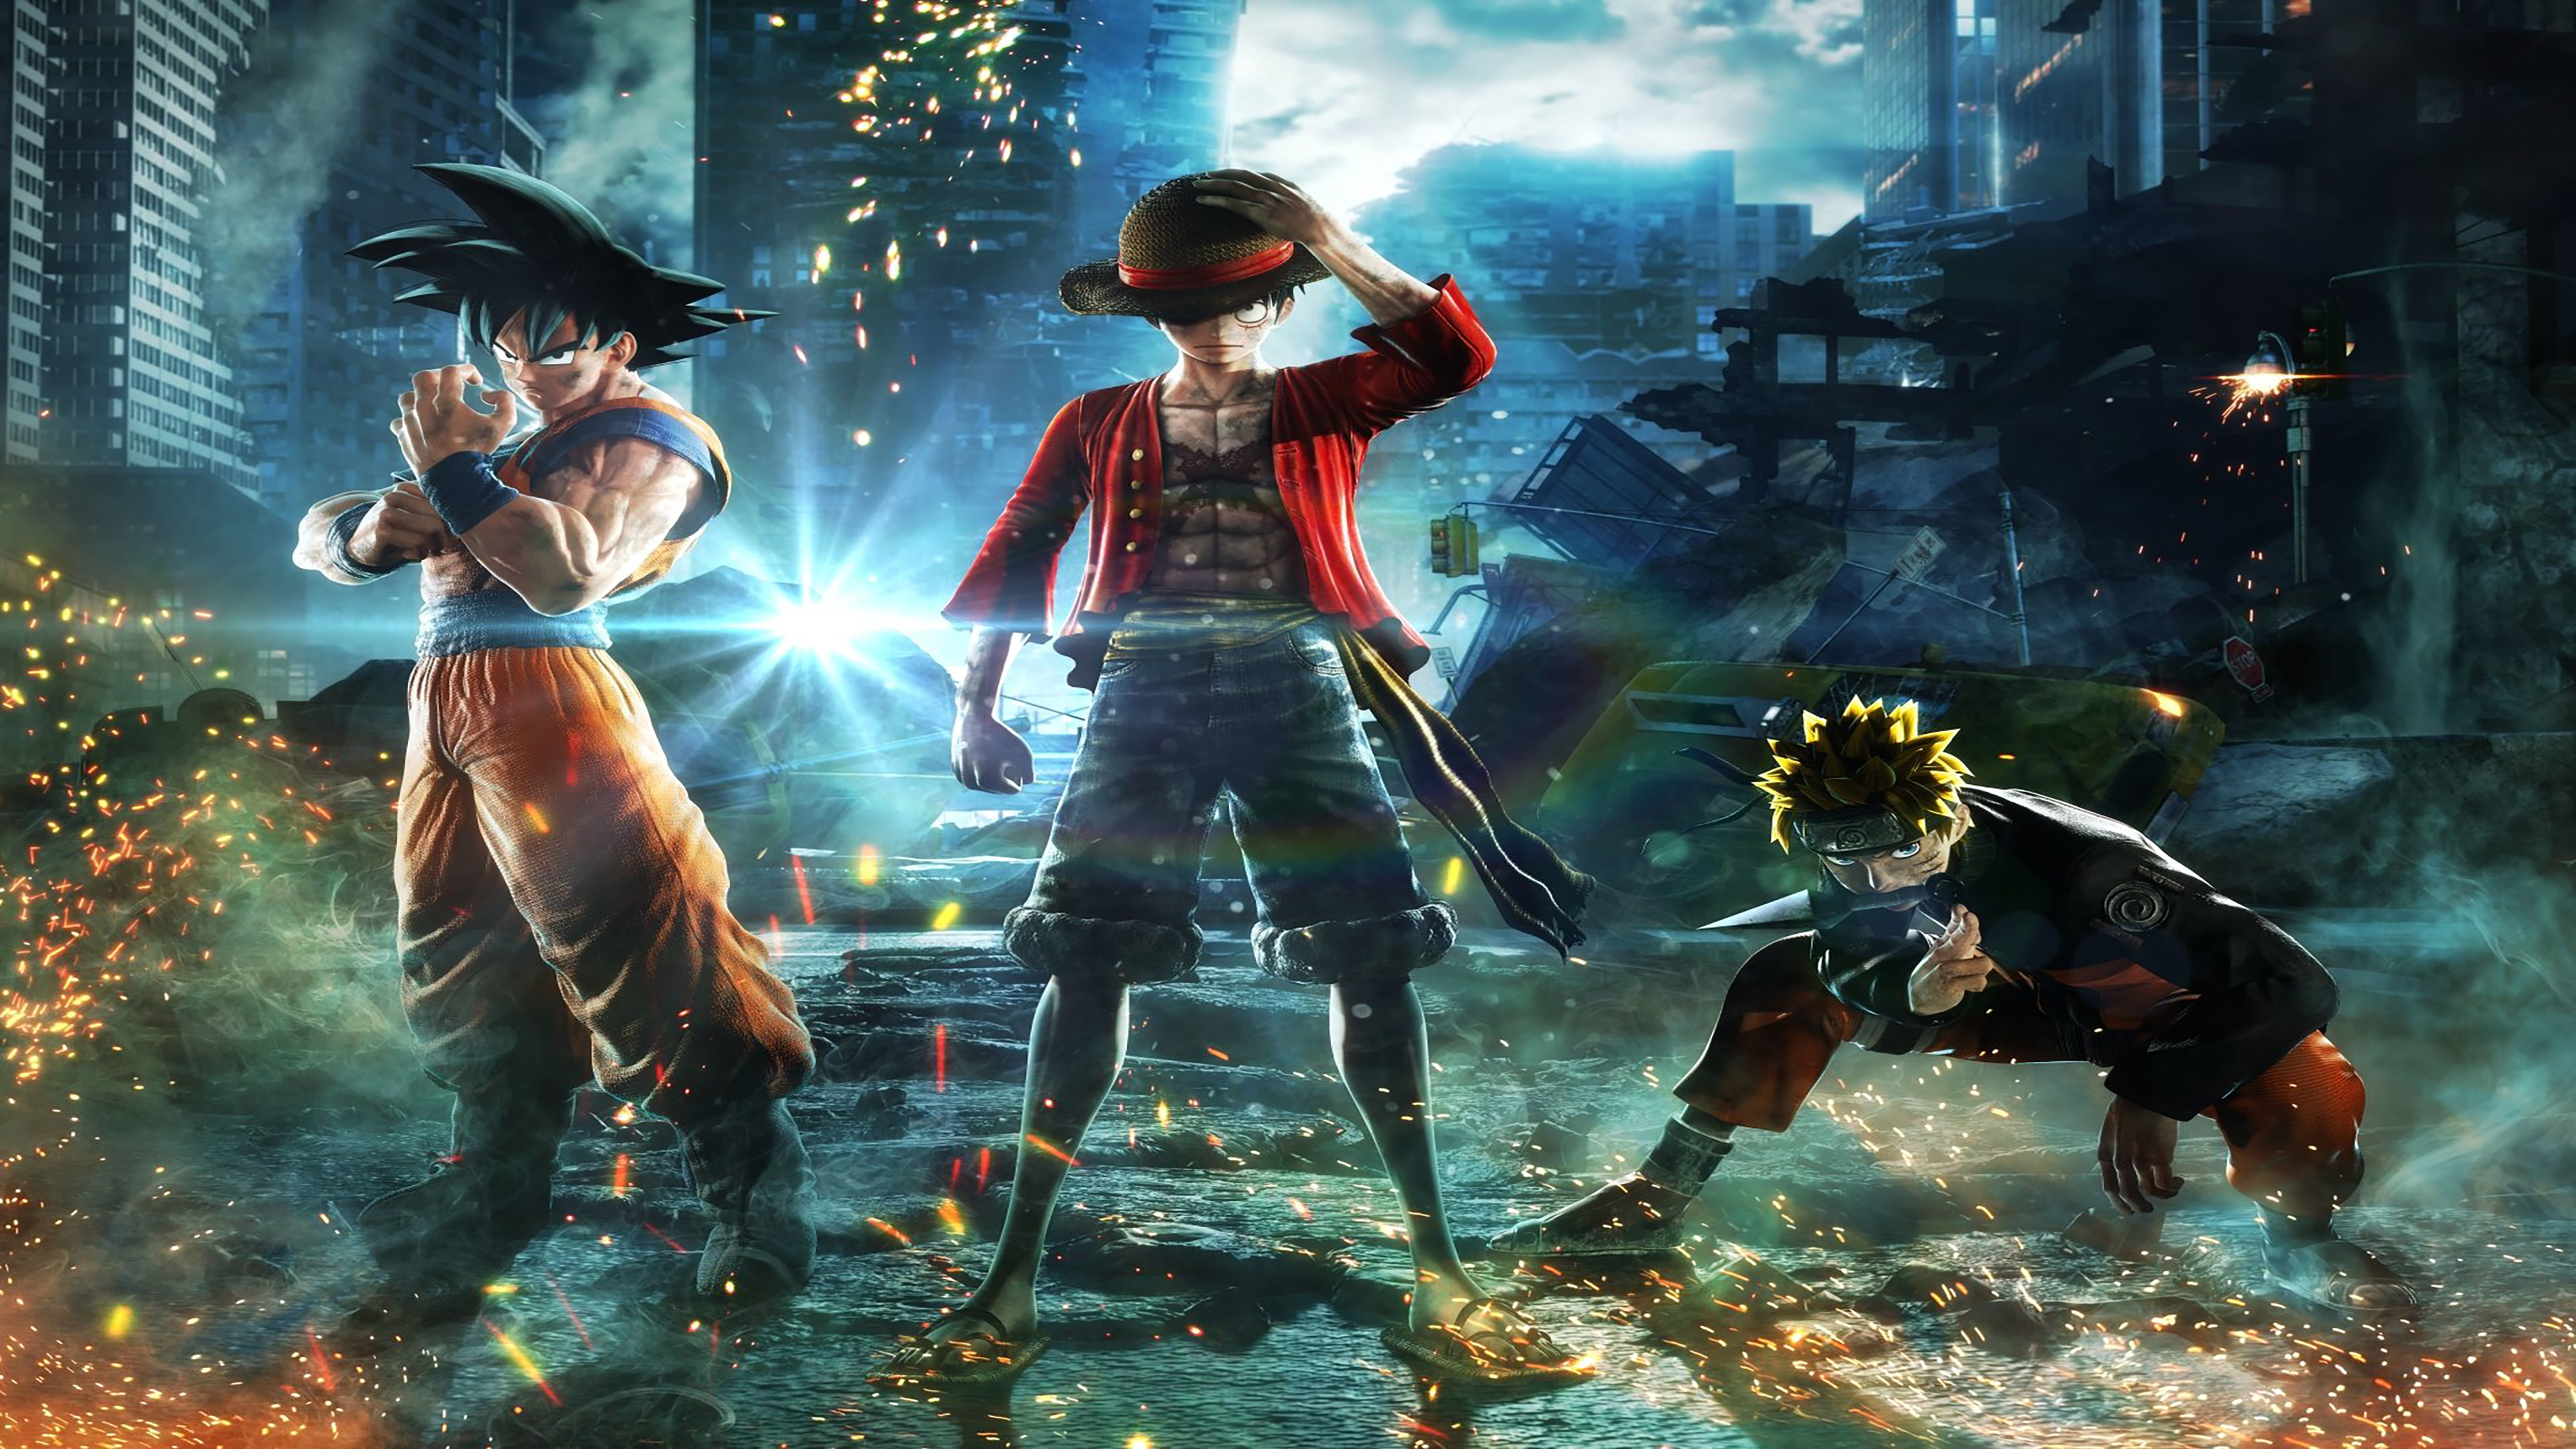 10 Best Gaming Wallpaper Hd 1920x1080 Full Hd 1080p For Pc: Jump Force Wallpapers In Ultra HD